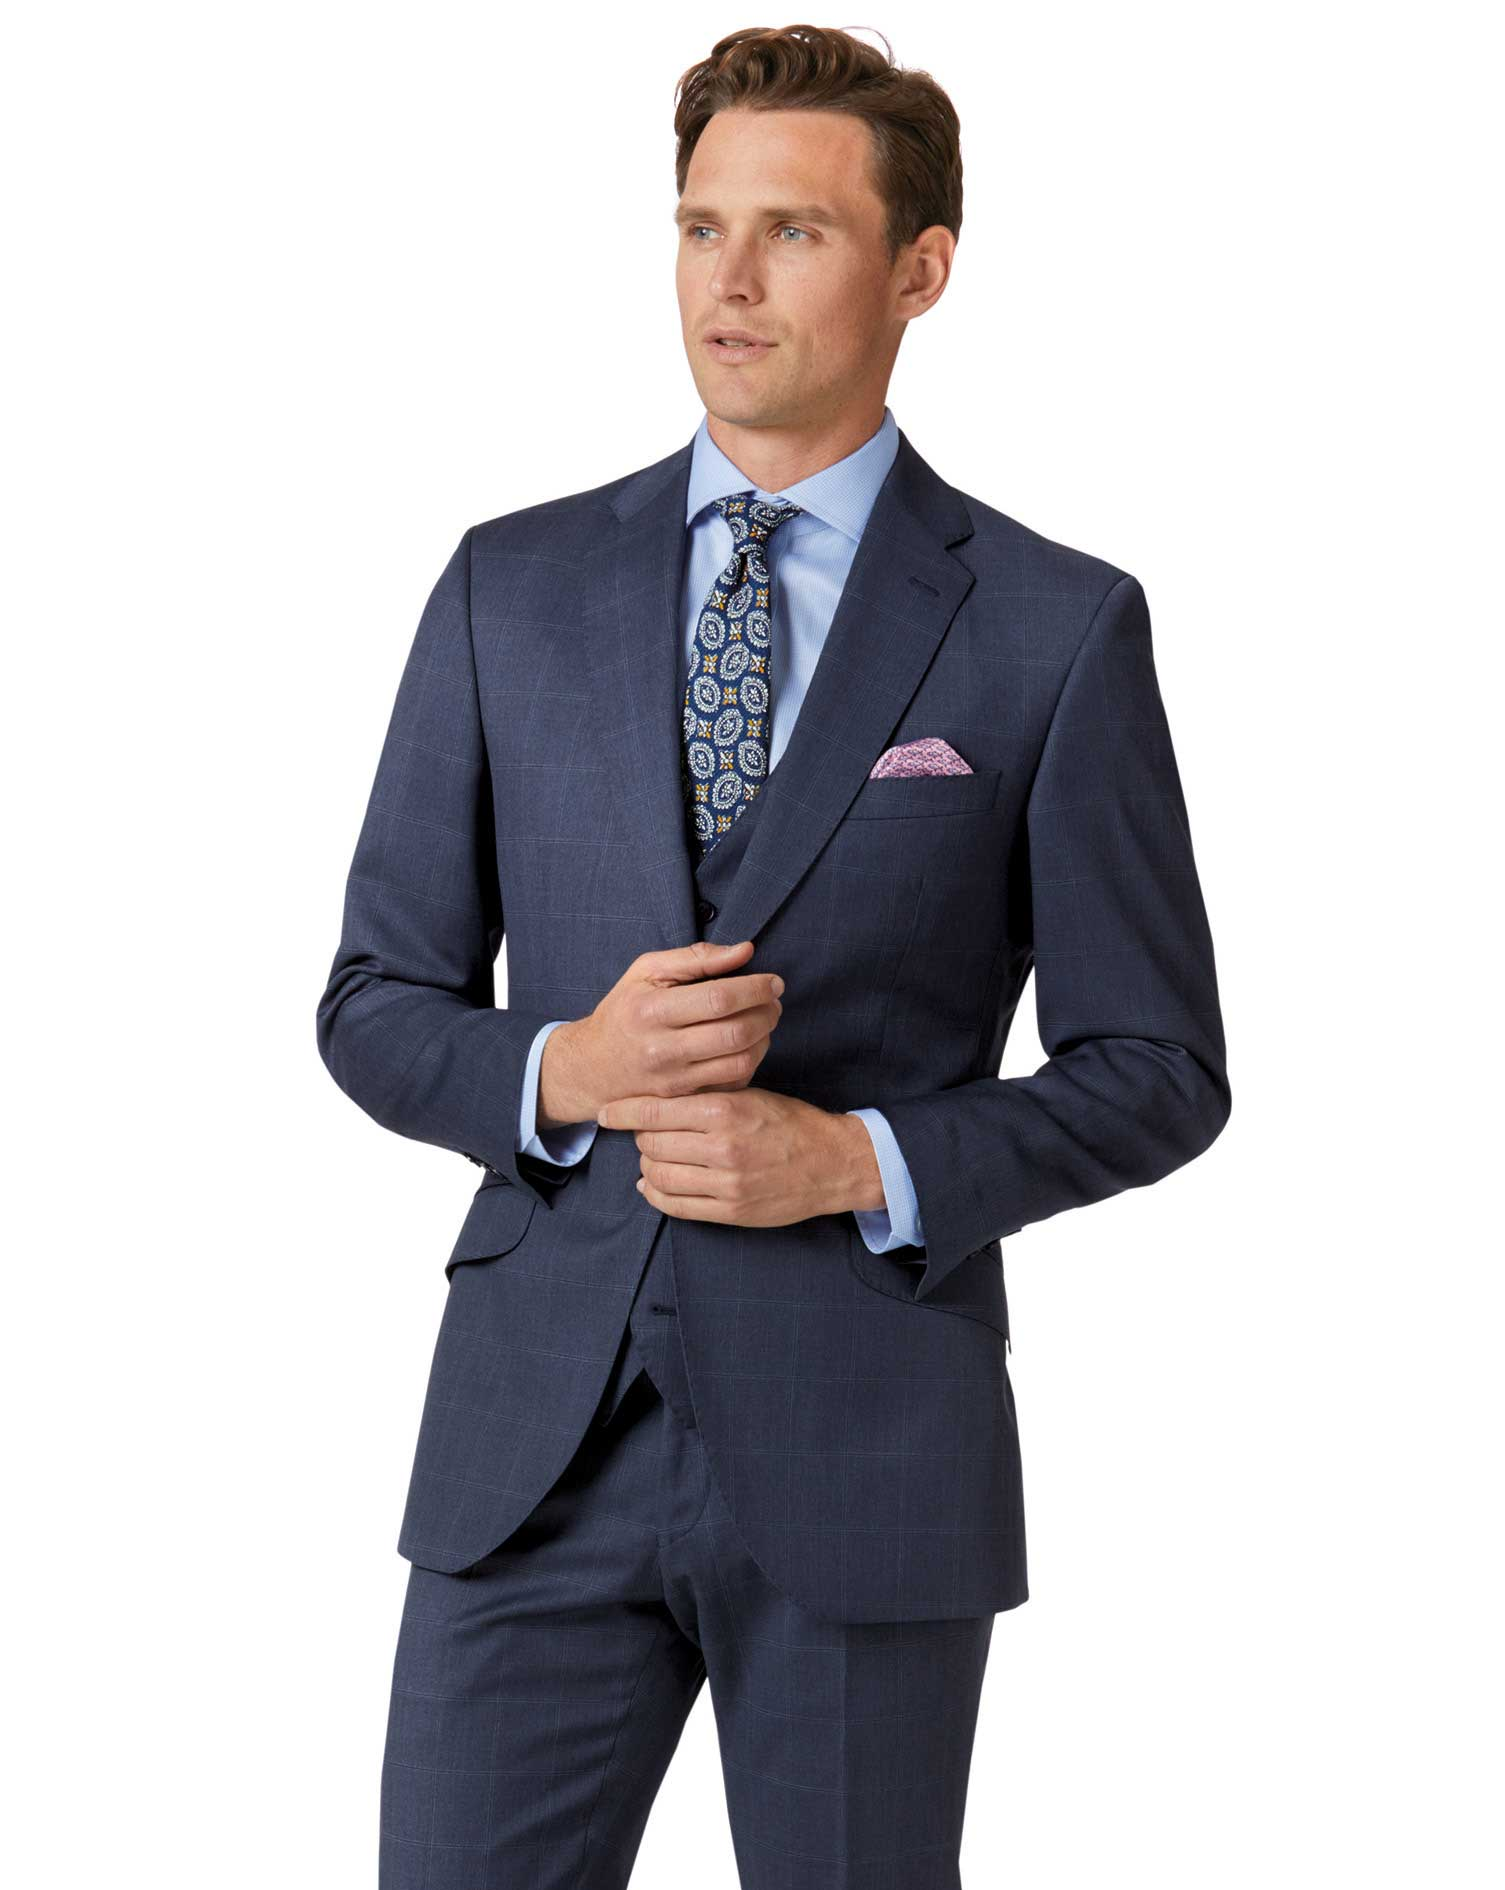 Image of Charles Tyrwhitt Airforce Blue Slim Fit Italian Suit Wool Jacket Size 38 Short by Charles Tyrwhitt